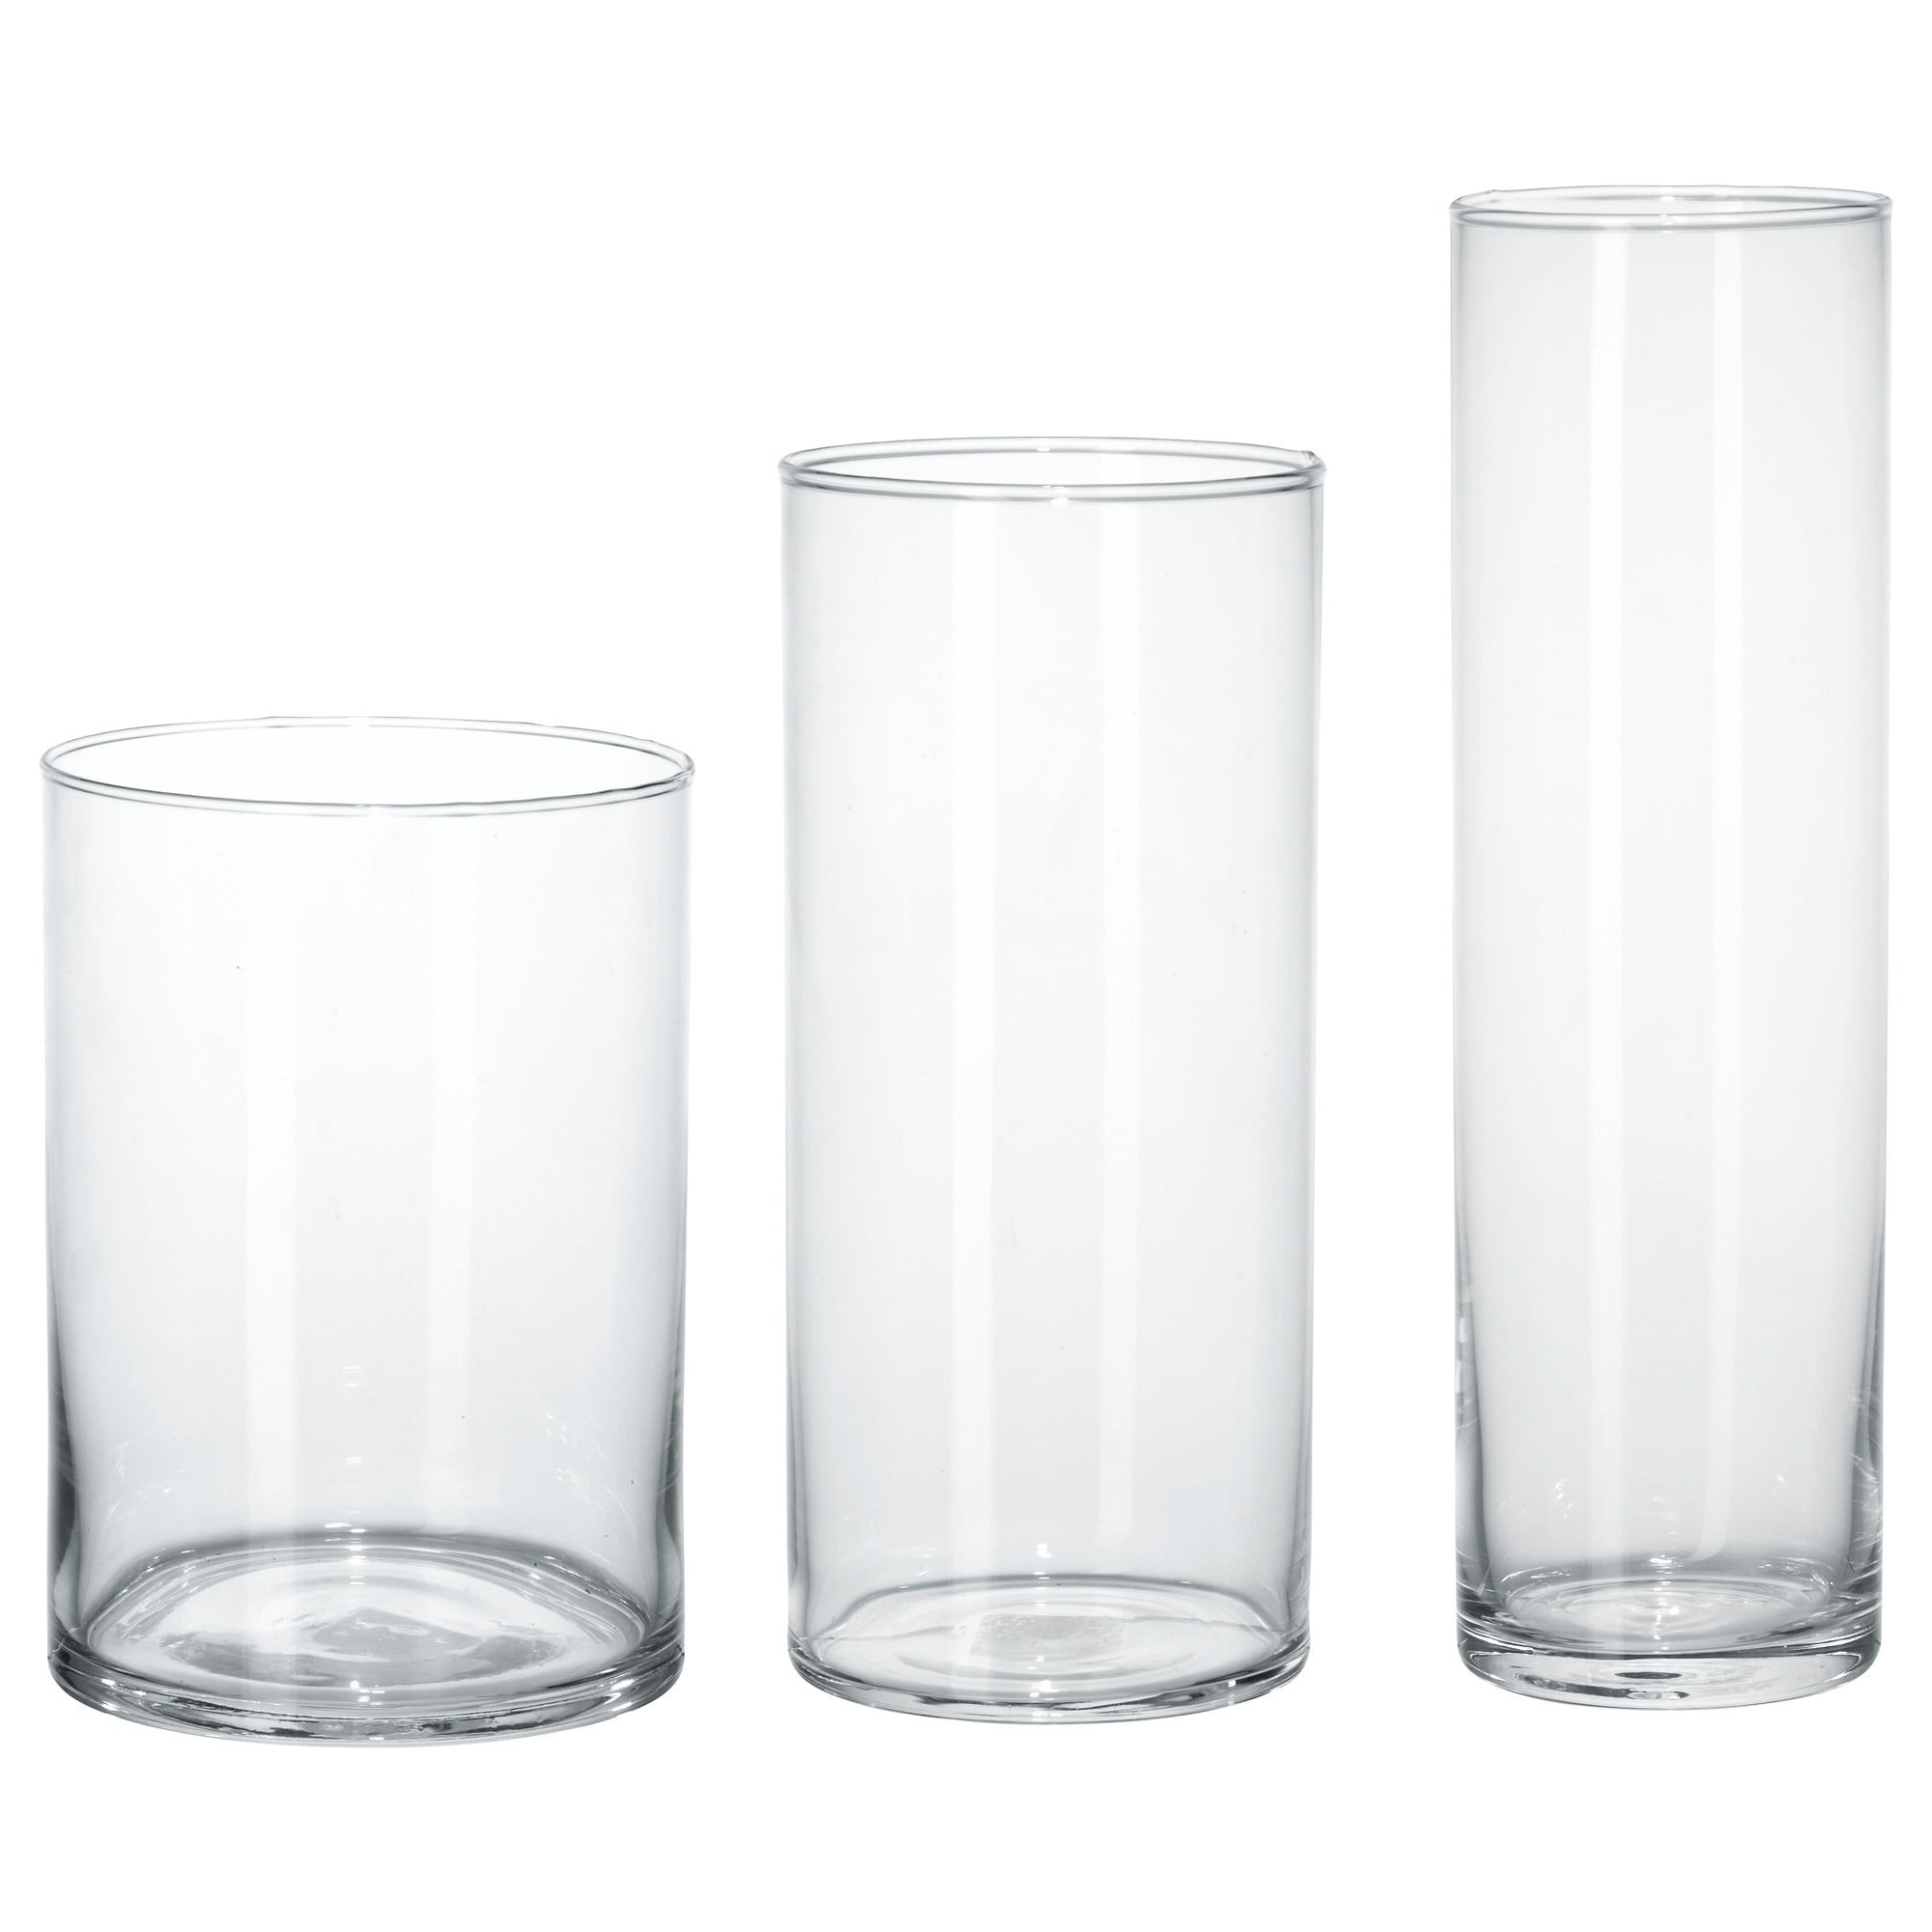 9 clear glass cylinder vase of cylinder vase set of 3 ikea intended for english frana§ais